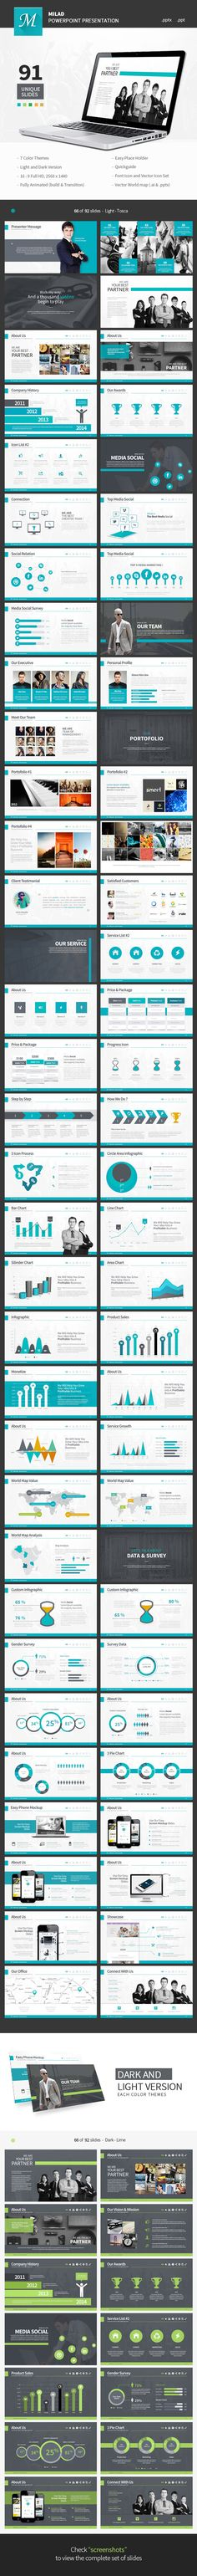 Milad - Powerpoint Presentation (PowerPoint Templates)